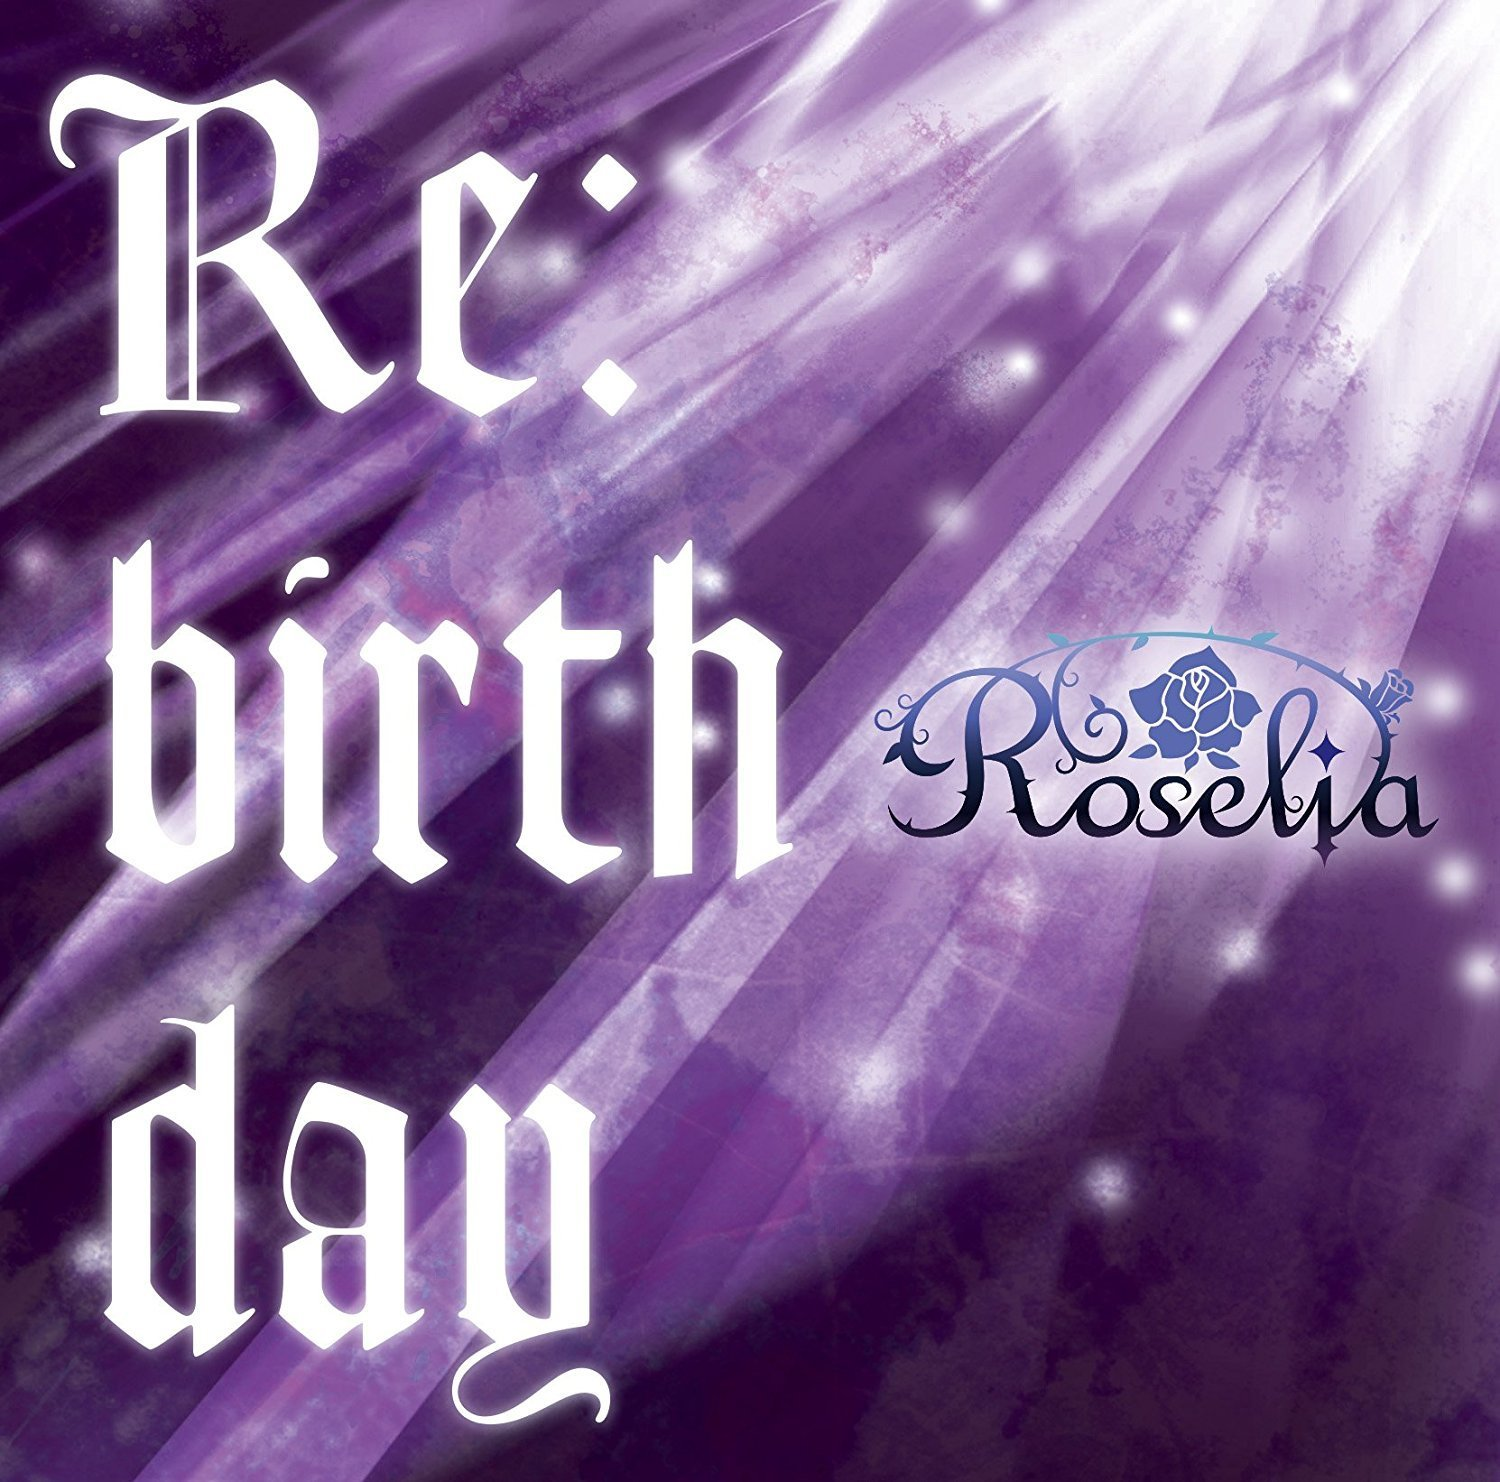 Re:birth day コール.jpg